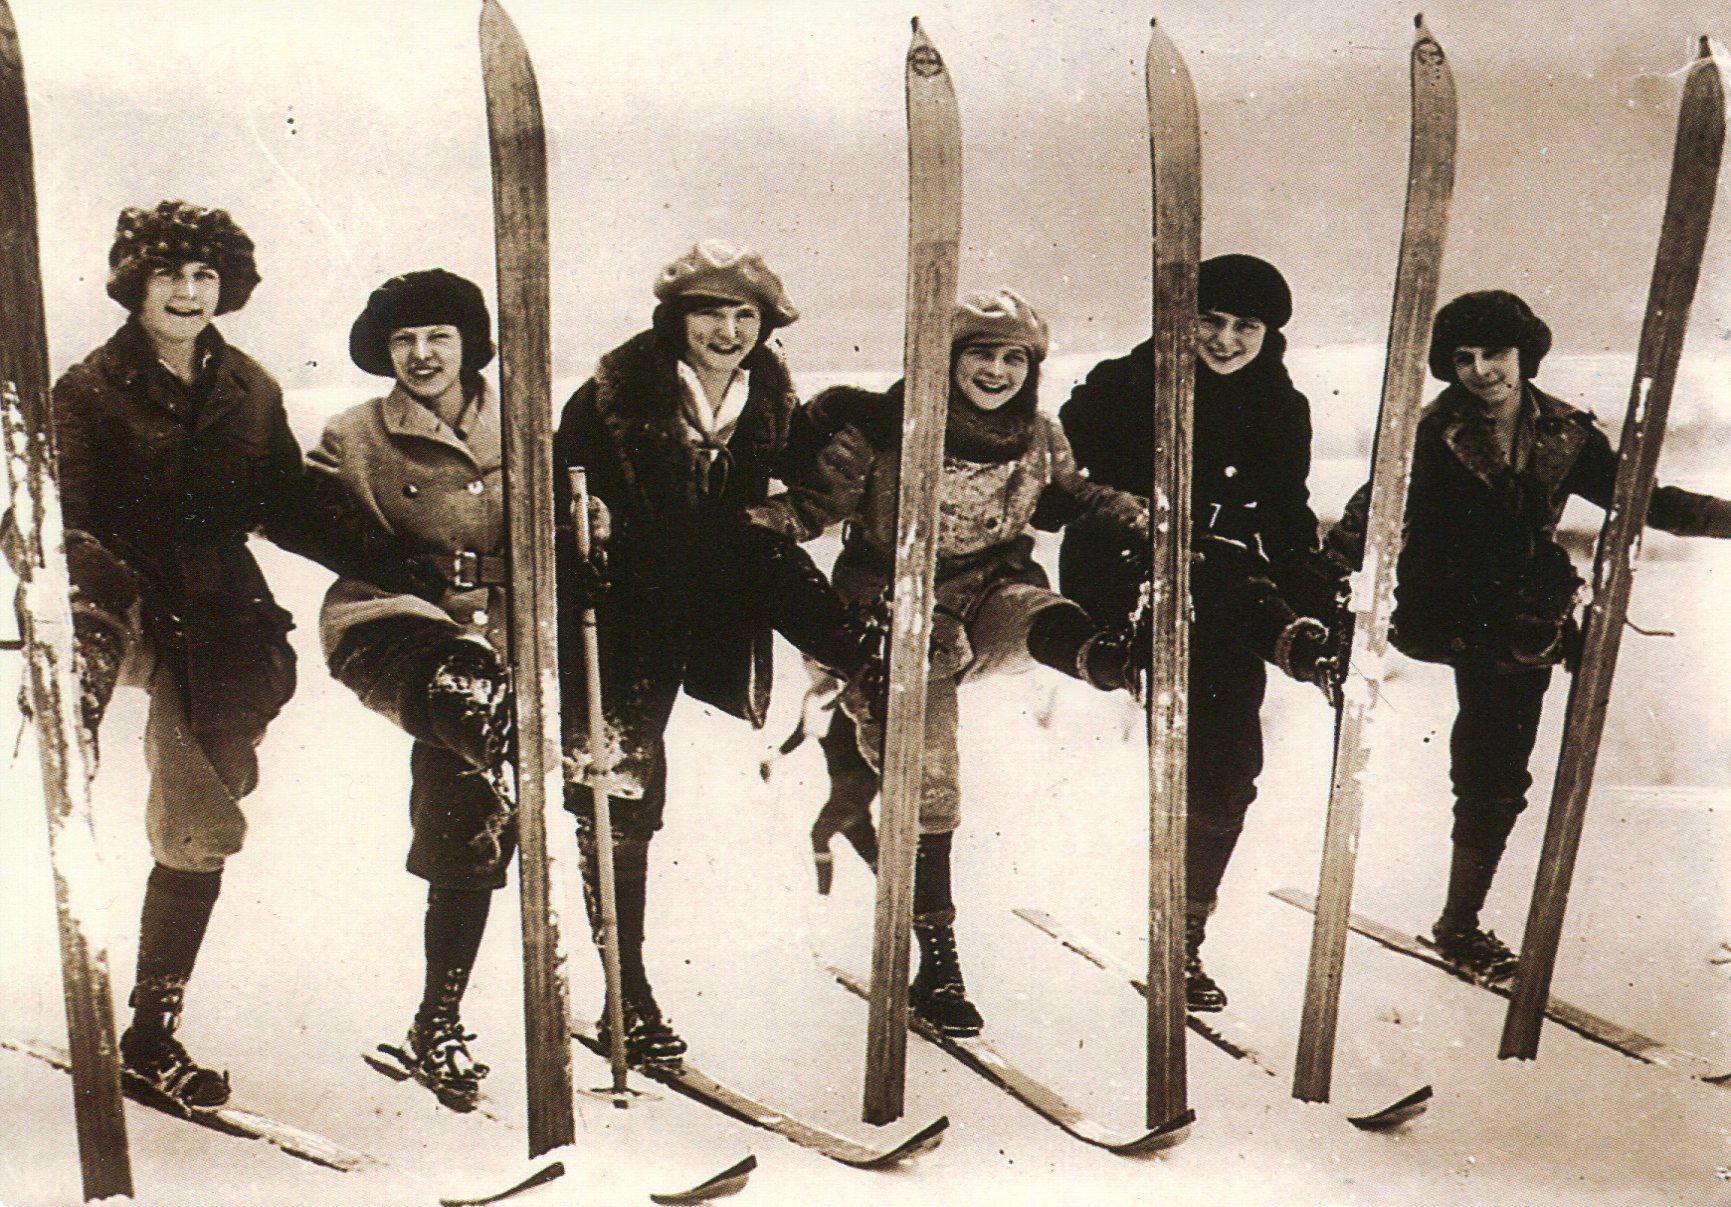 Old Fashioned Skis